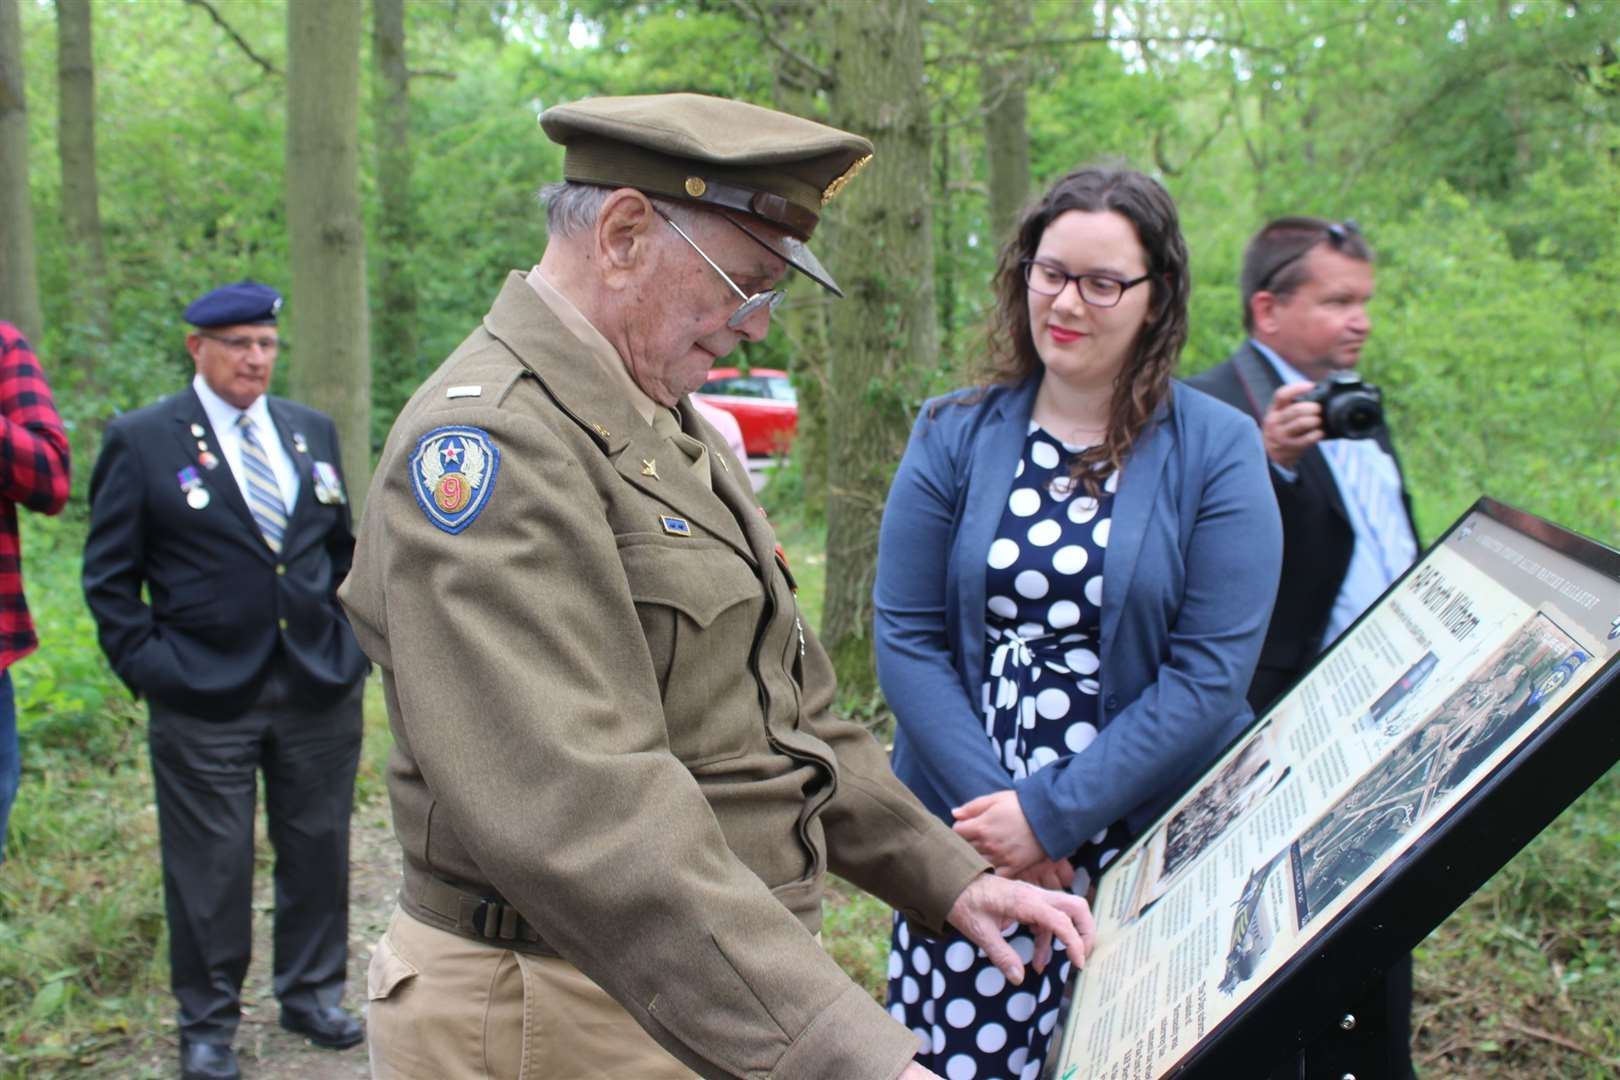 LLt Col Hamilton with Claire Saunders, heritage regeneration officer at InvestSK, whose grant funding paid for the information board at Twyford Wood